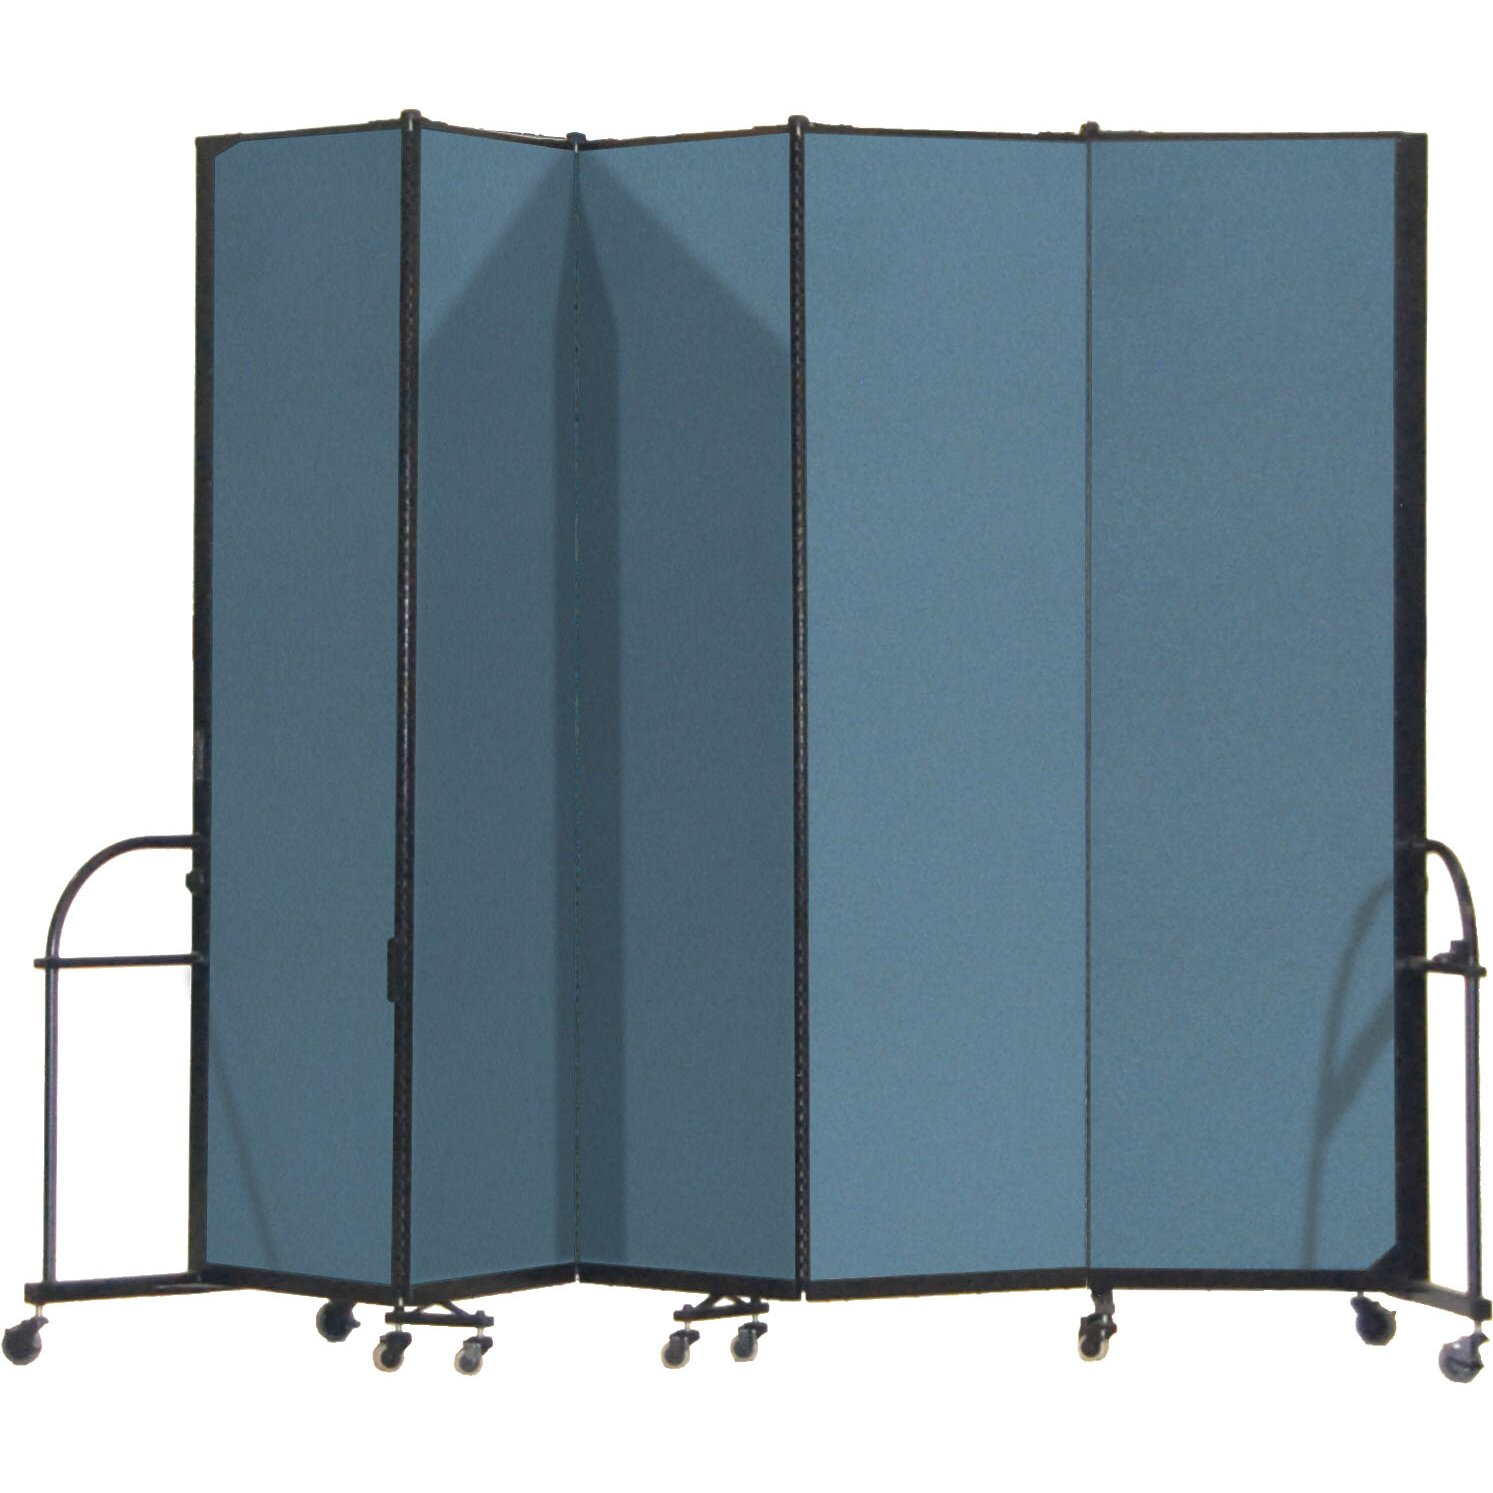 Page not found screenflex portable room iders - Heavy Duty Five Panel Portable Room Divider Wayfair Supply